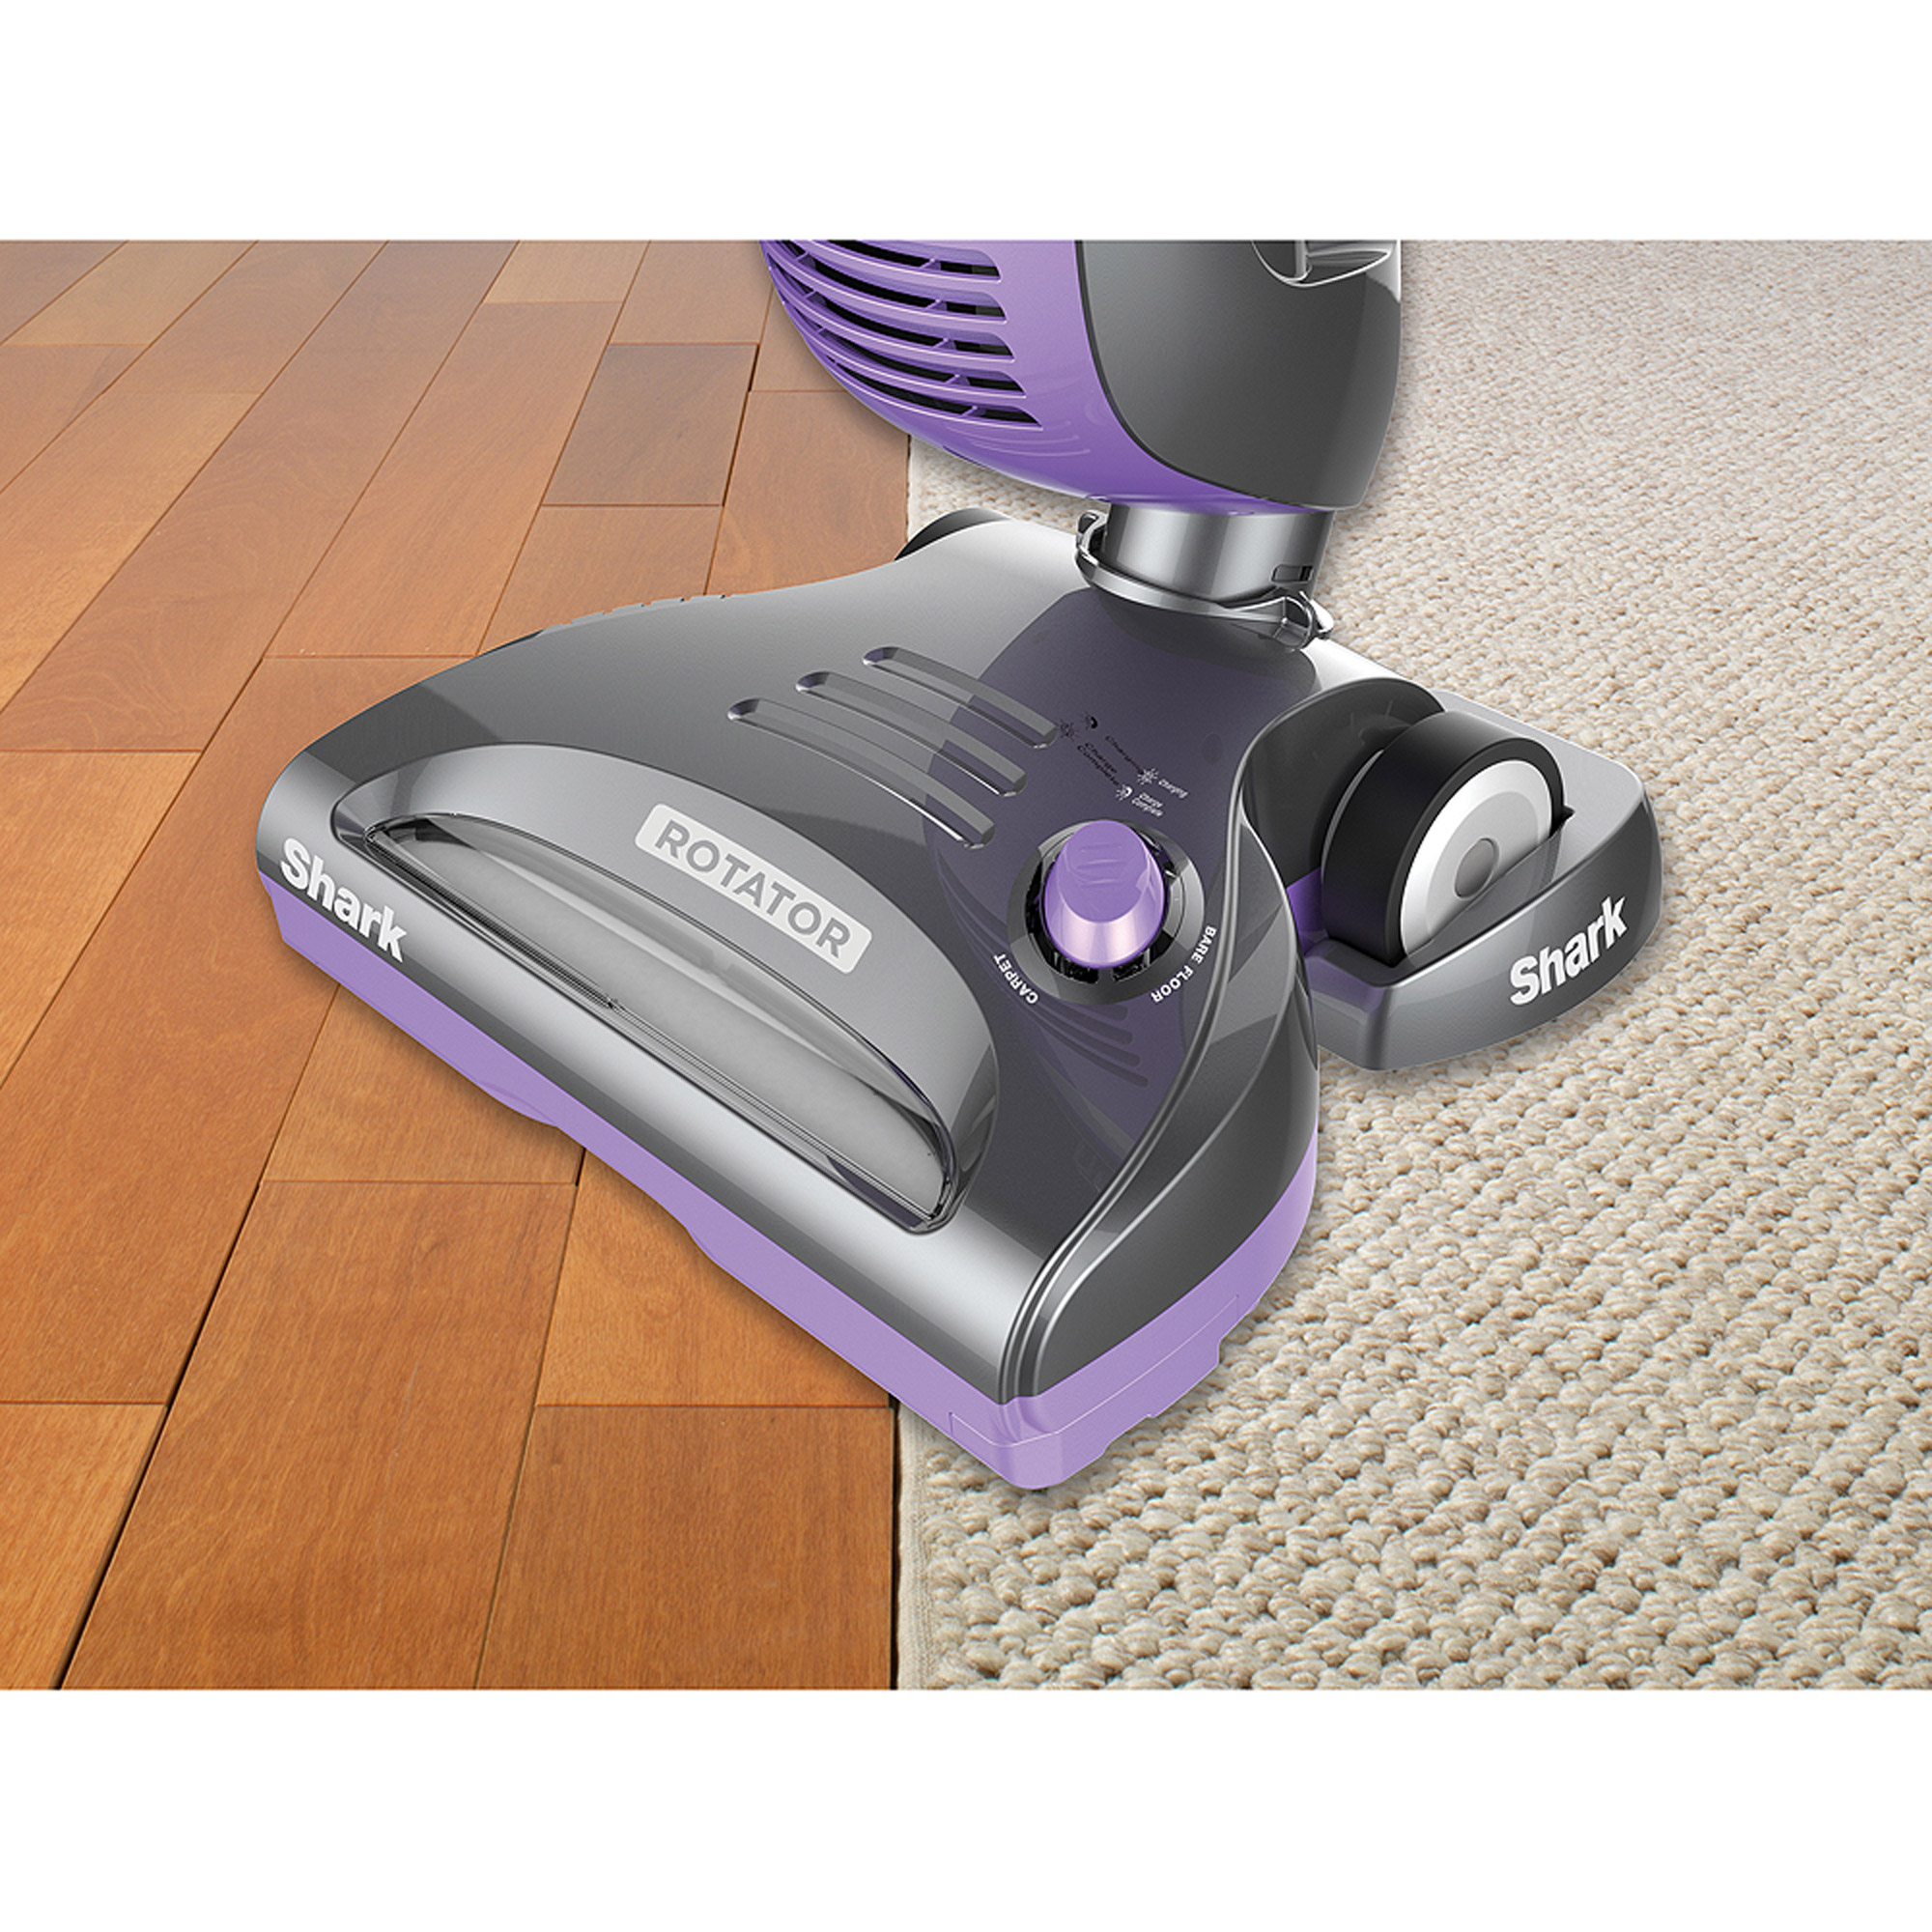 Top 10 Best Shark Cordless Vacuum Cleaners 2019